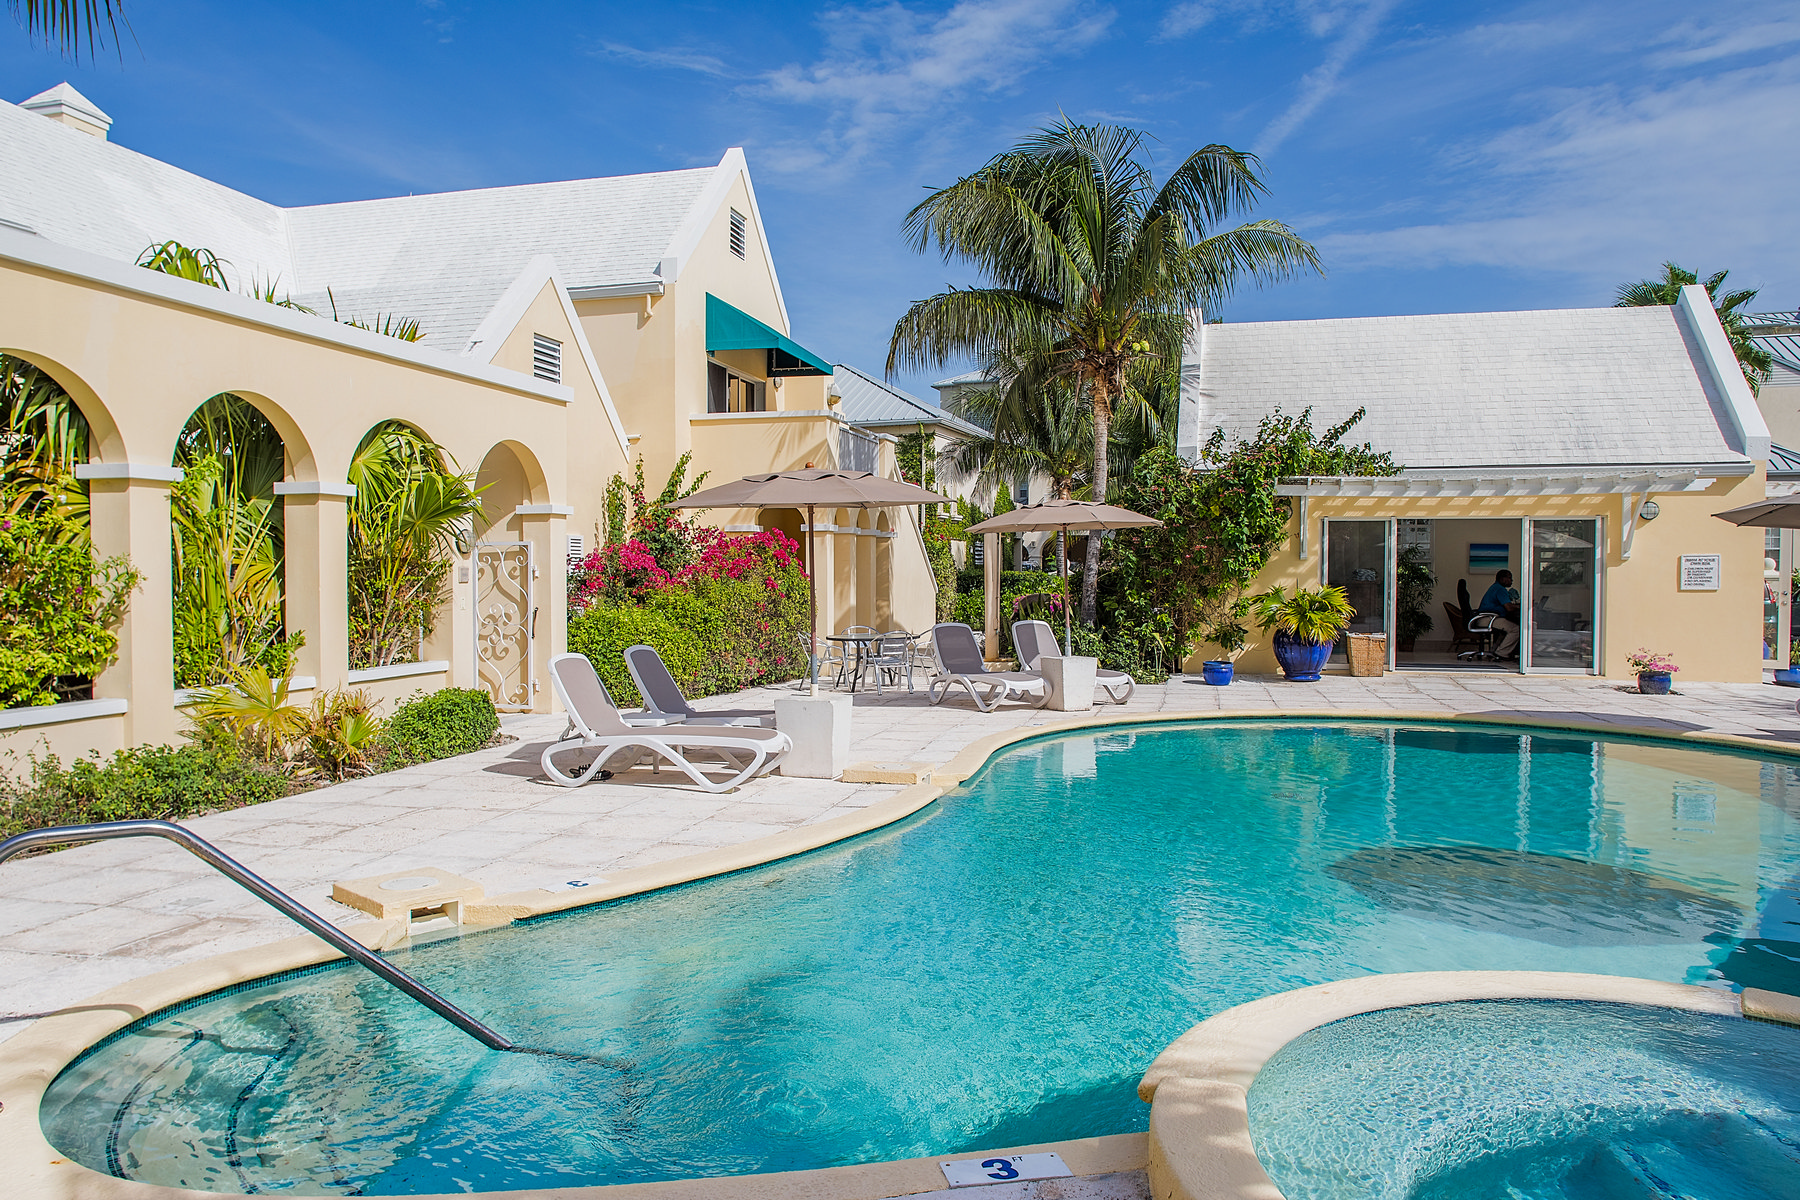 Other Residential for Sale at Reef Residences Grace Bay, TKCA 1ZZ Turks And Caicos Islands